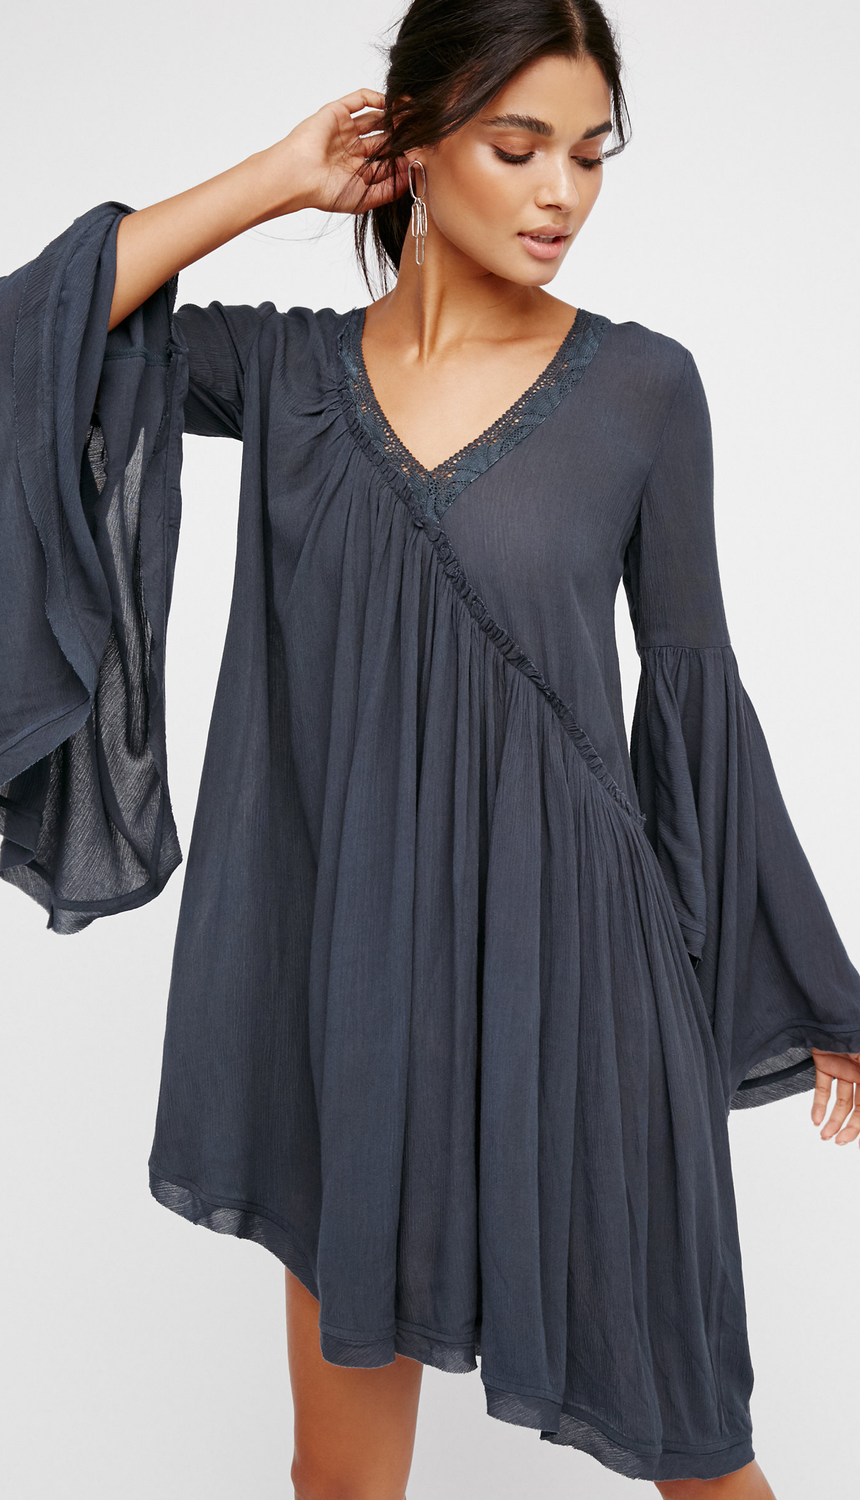 Free People Believe In Me Tunic